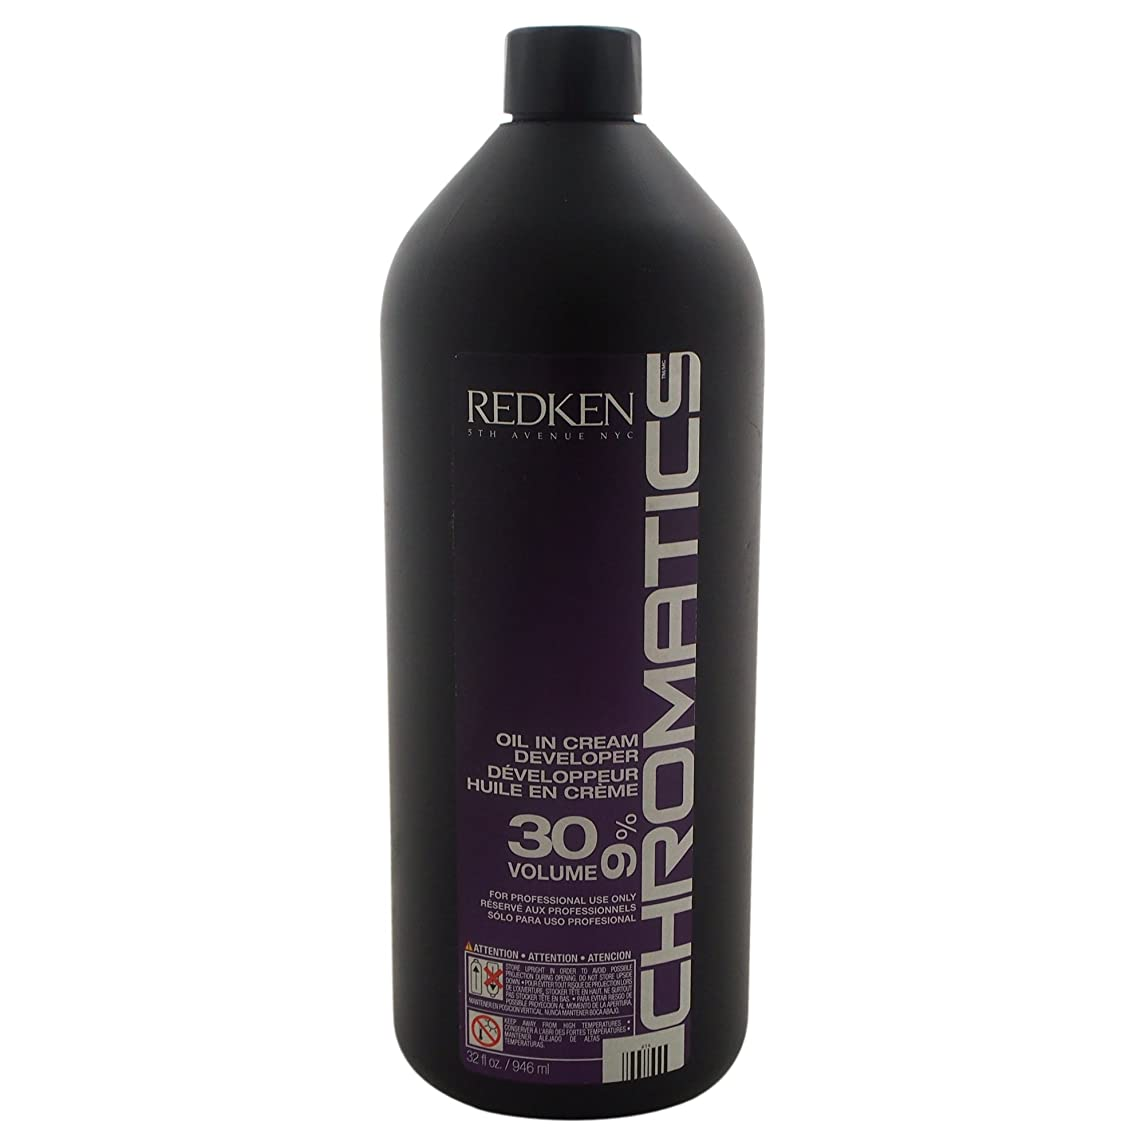 滝リスブラウスRedken Chromatics Oil In Cream Developer 30 Volume 9 Percent Cream, 32 Ounce by Redken